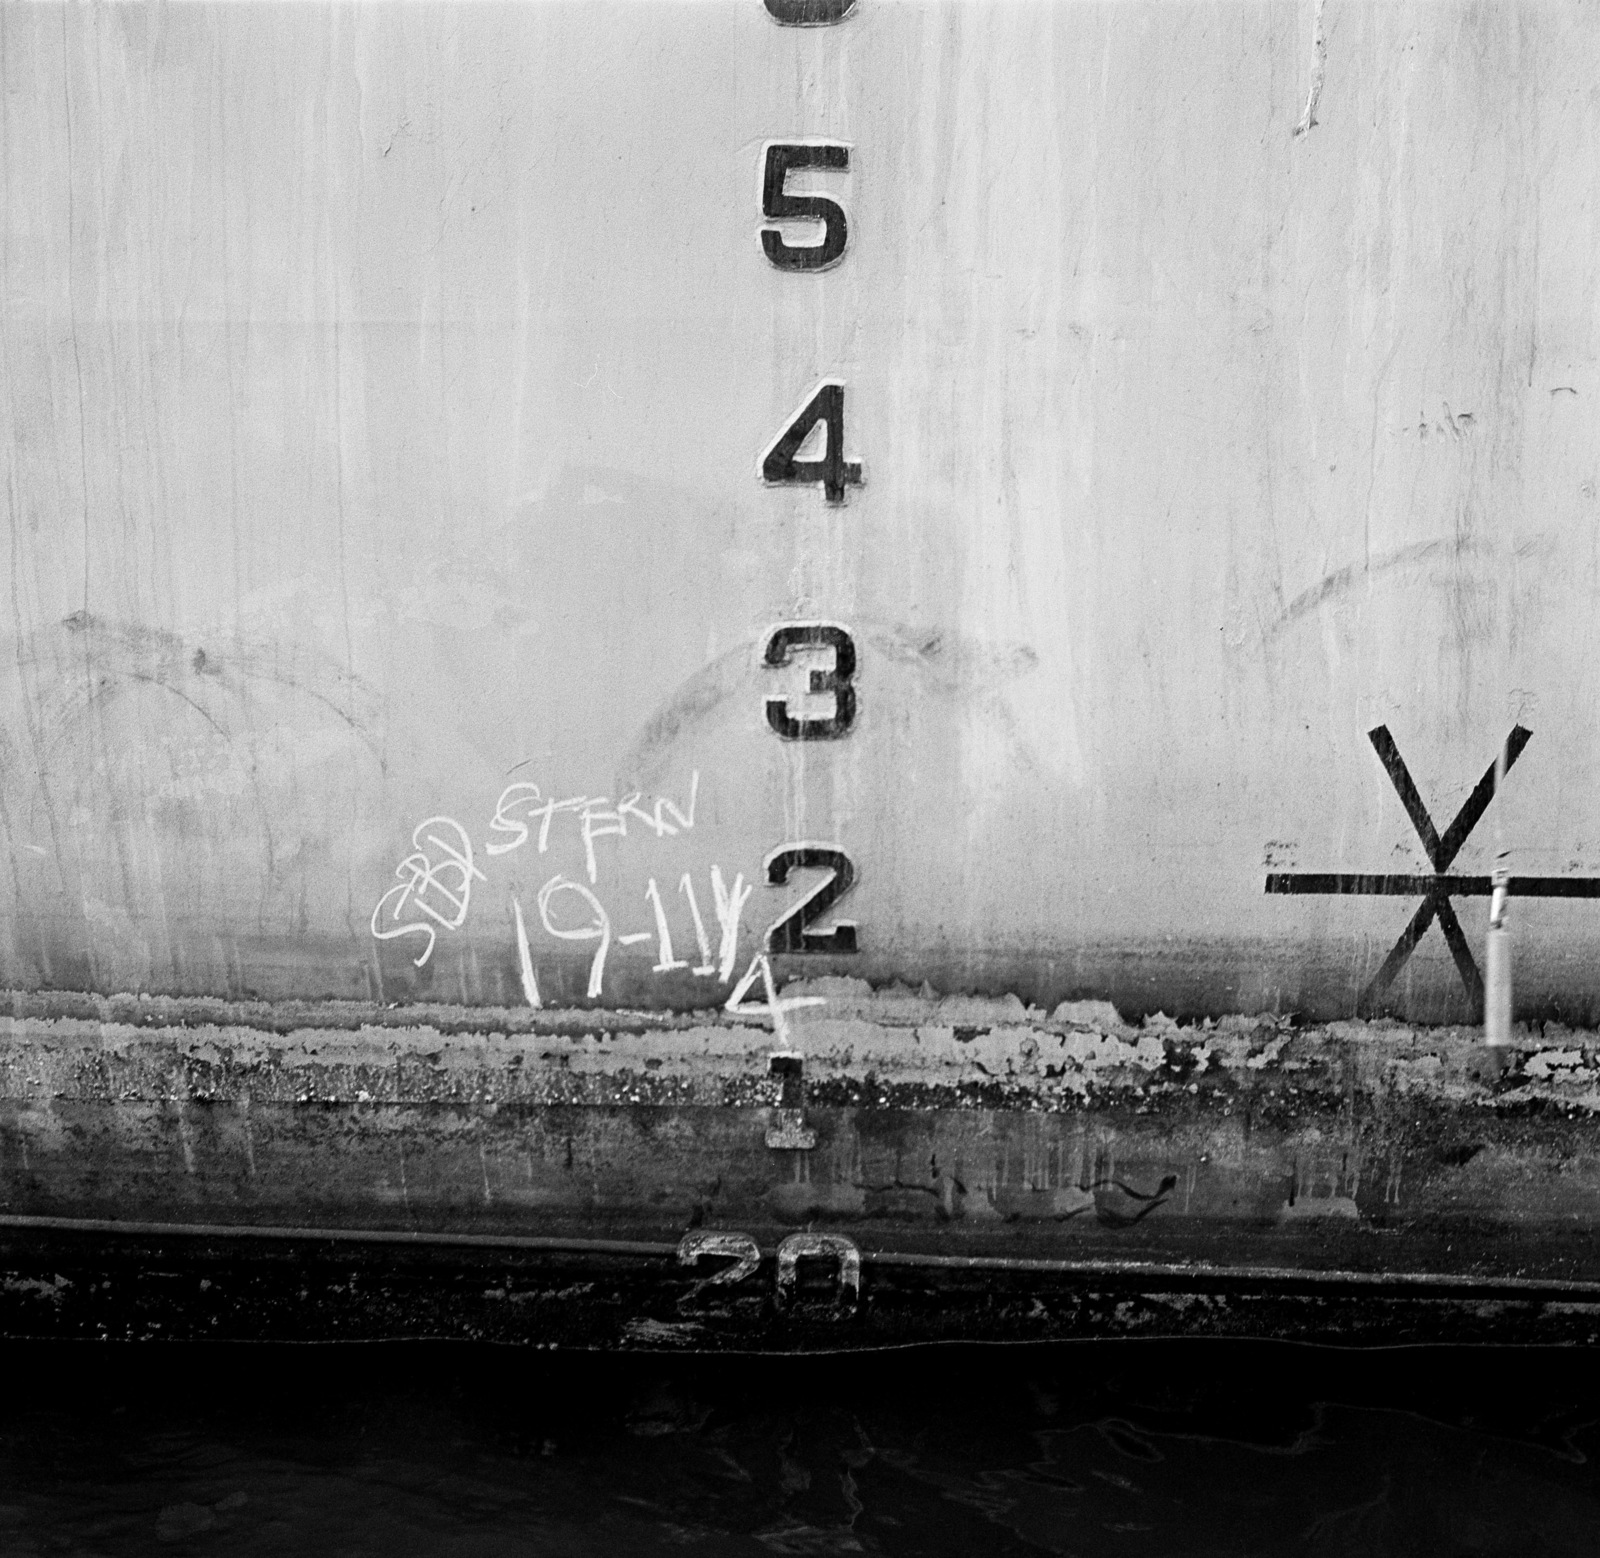 A view of the aft starboard draft markings aboard the destroyer DD-997, hull number 4801, during inclining experiments